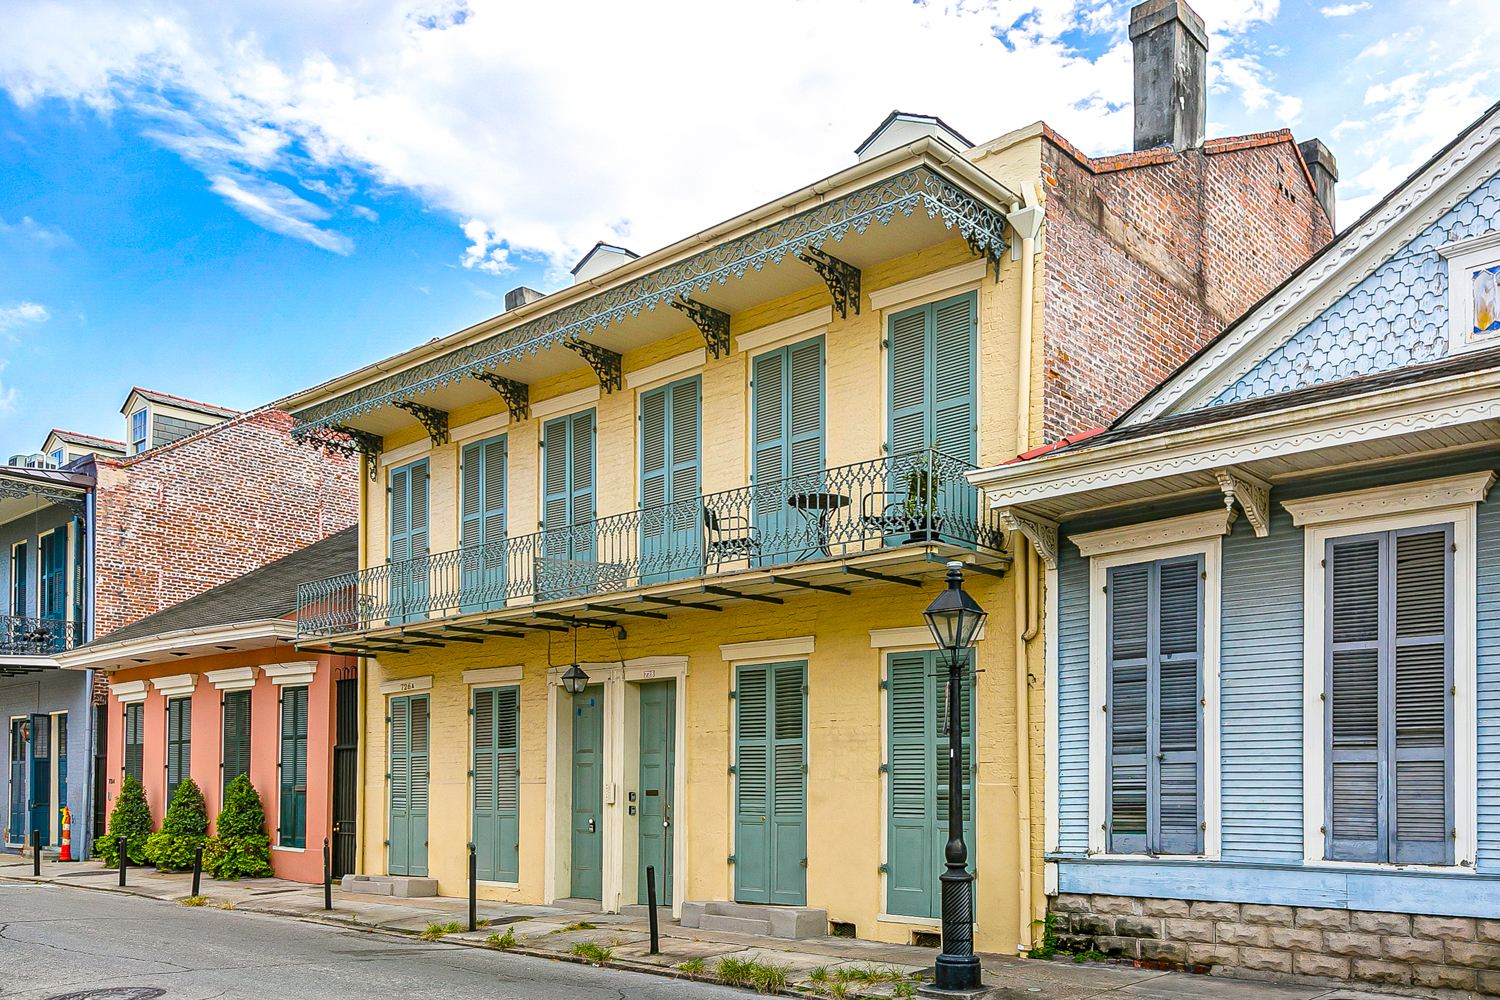 French Quarter, Condo, 1 beds, 2.0 baths, $2400 per month New Orleans Rental - devie image_0